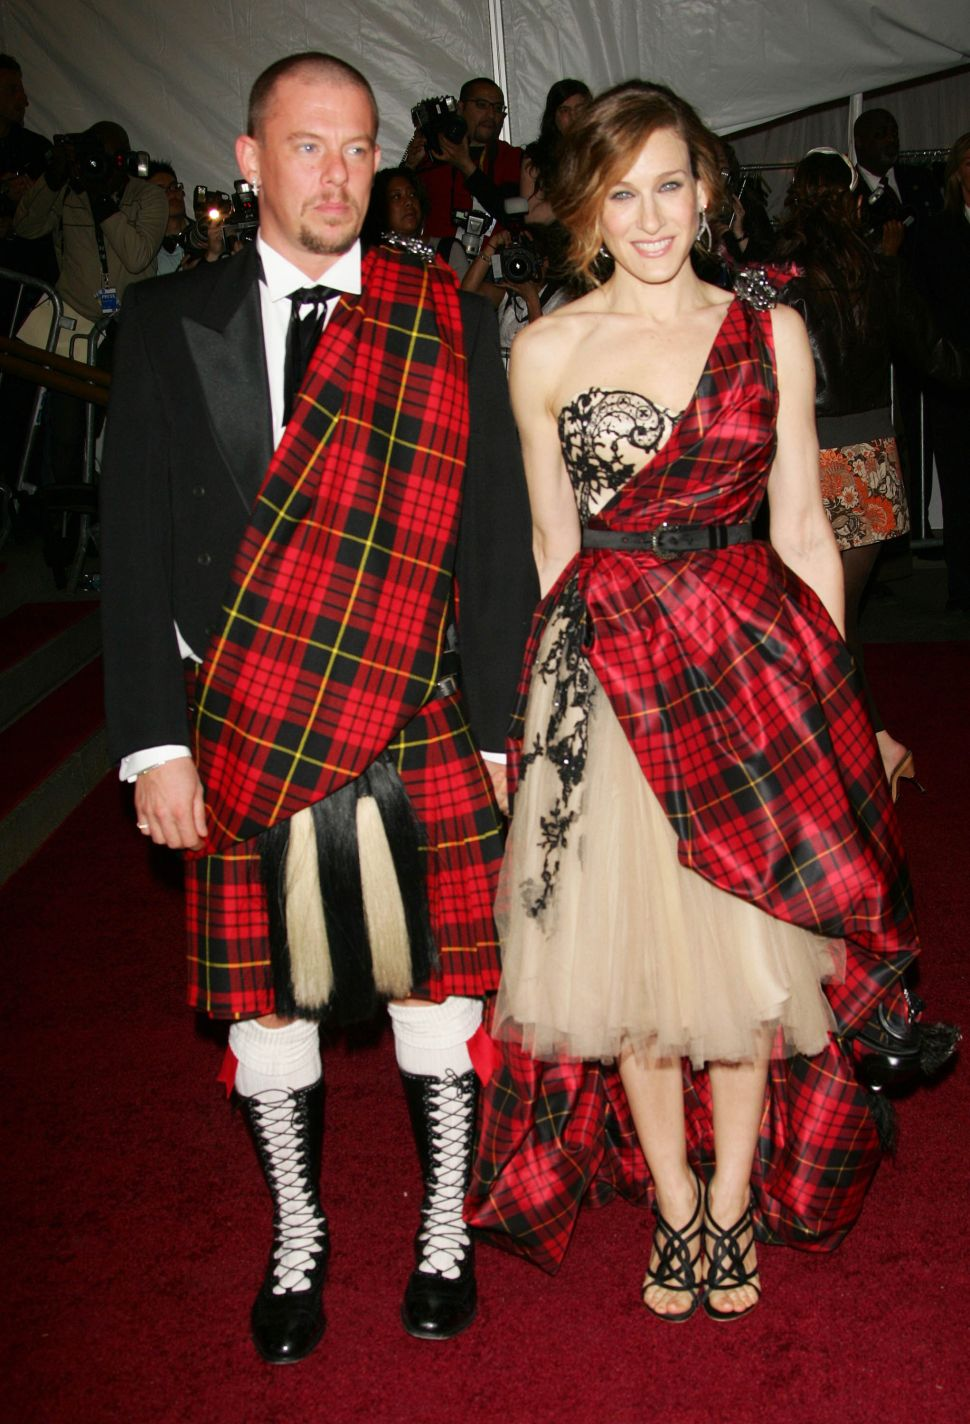 Alexander McQueen Is Coming to the Silver Screen